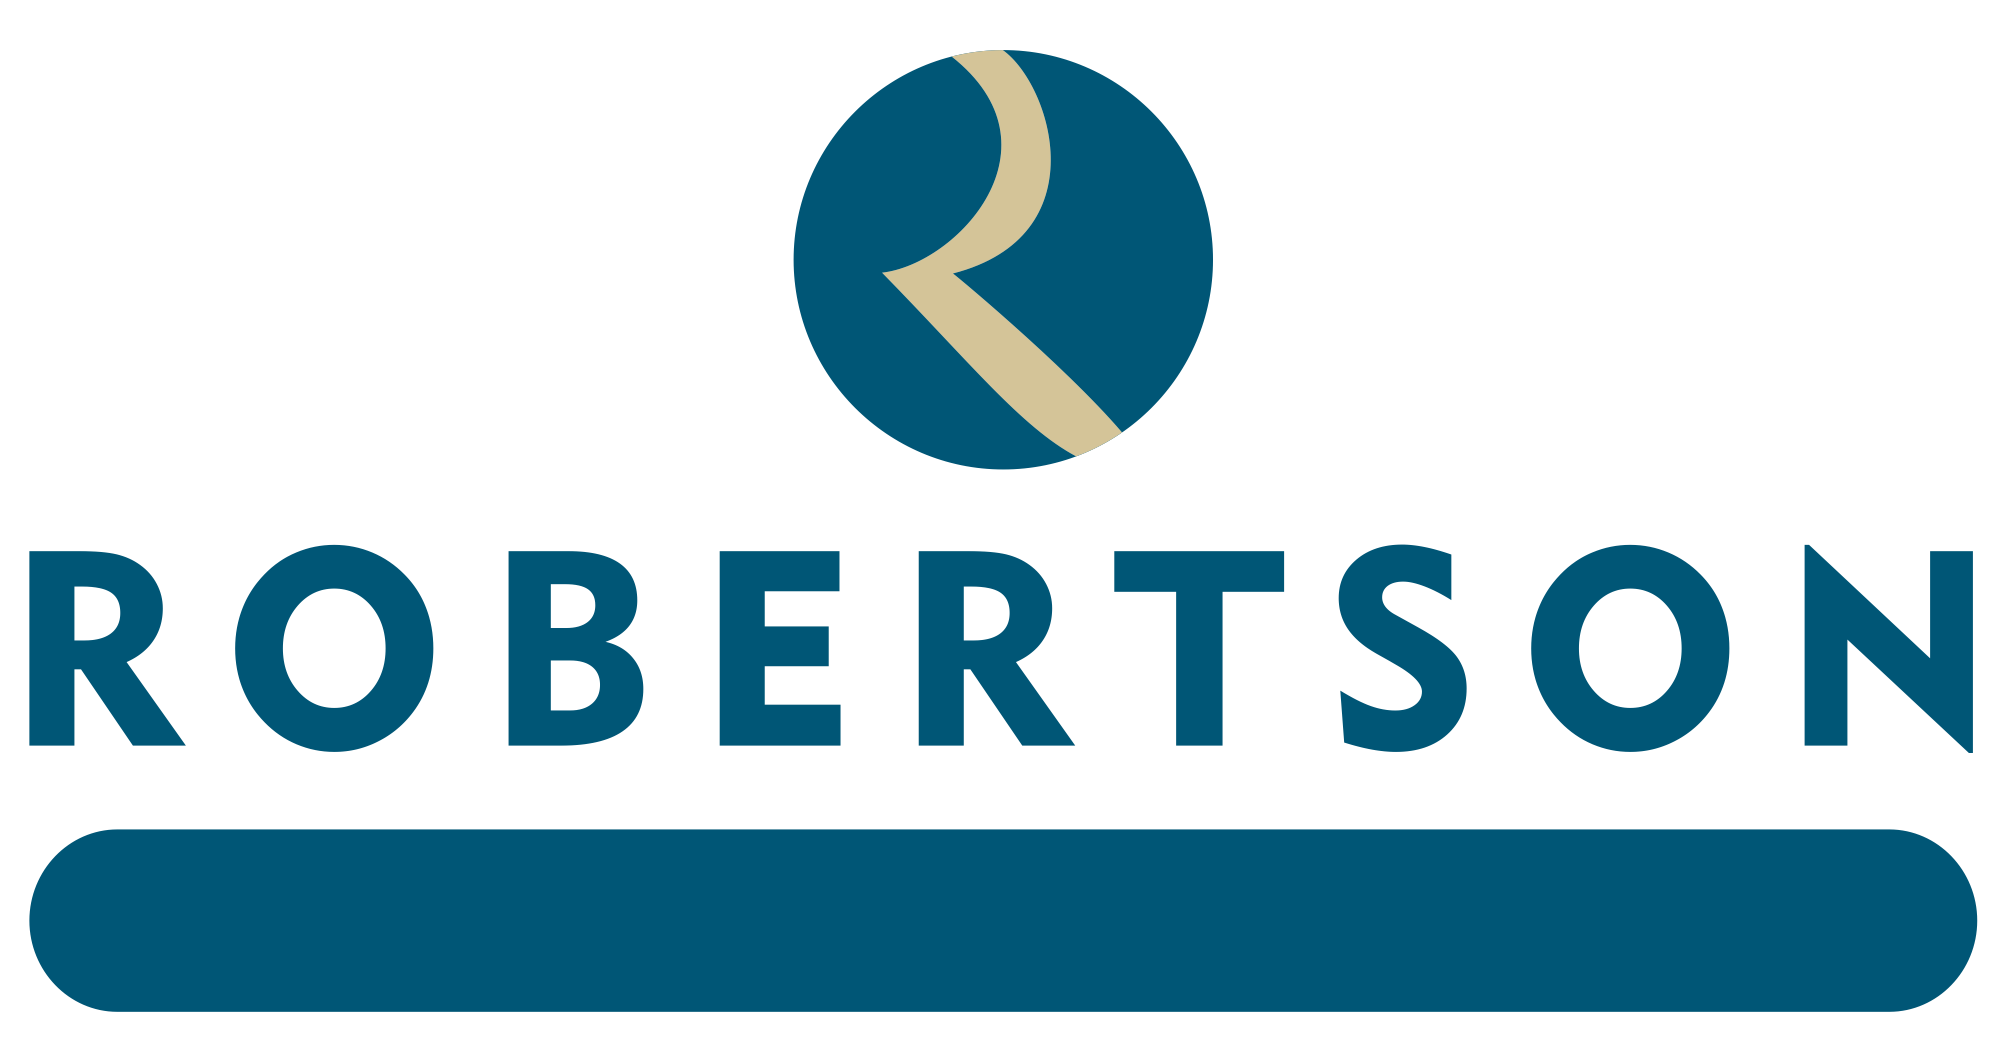 Robertson Group logo